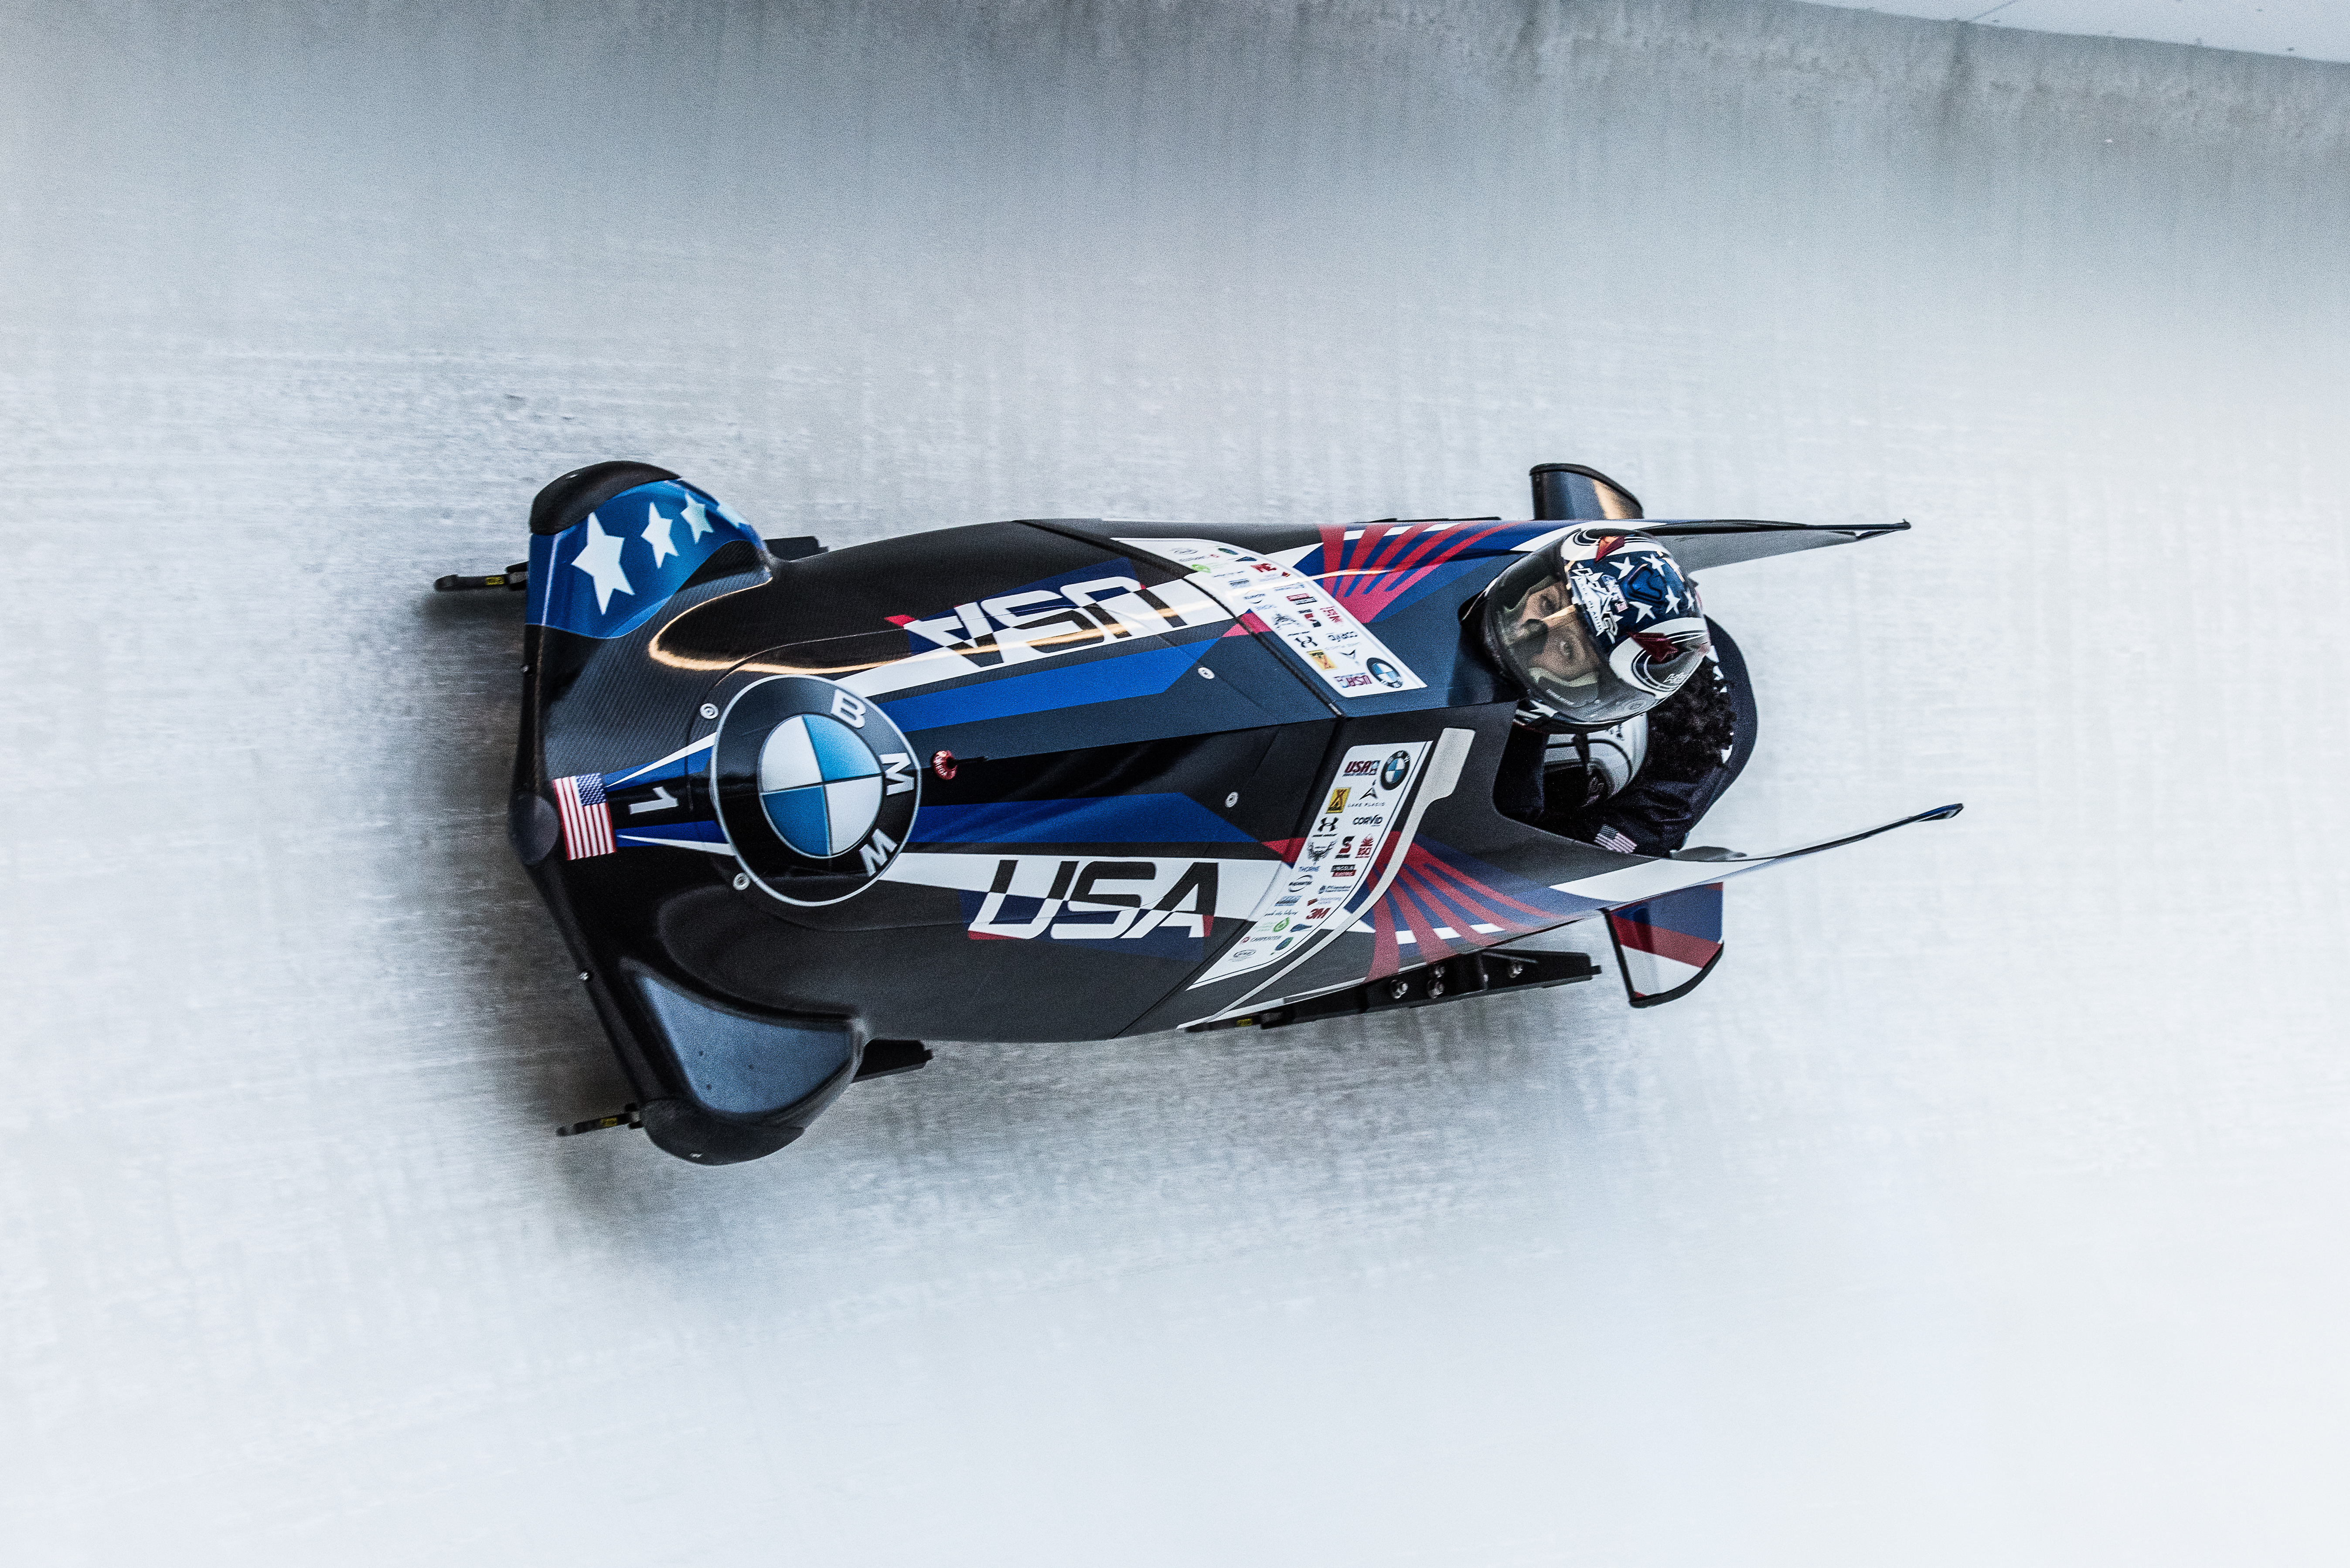 Jamie Greubel Poser races Olympic bobsled